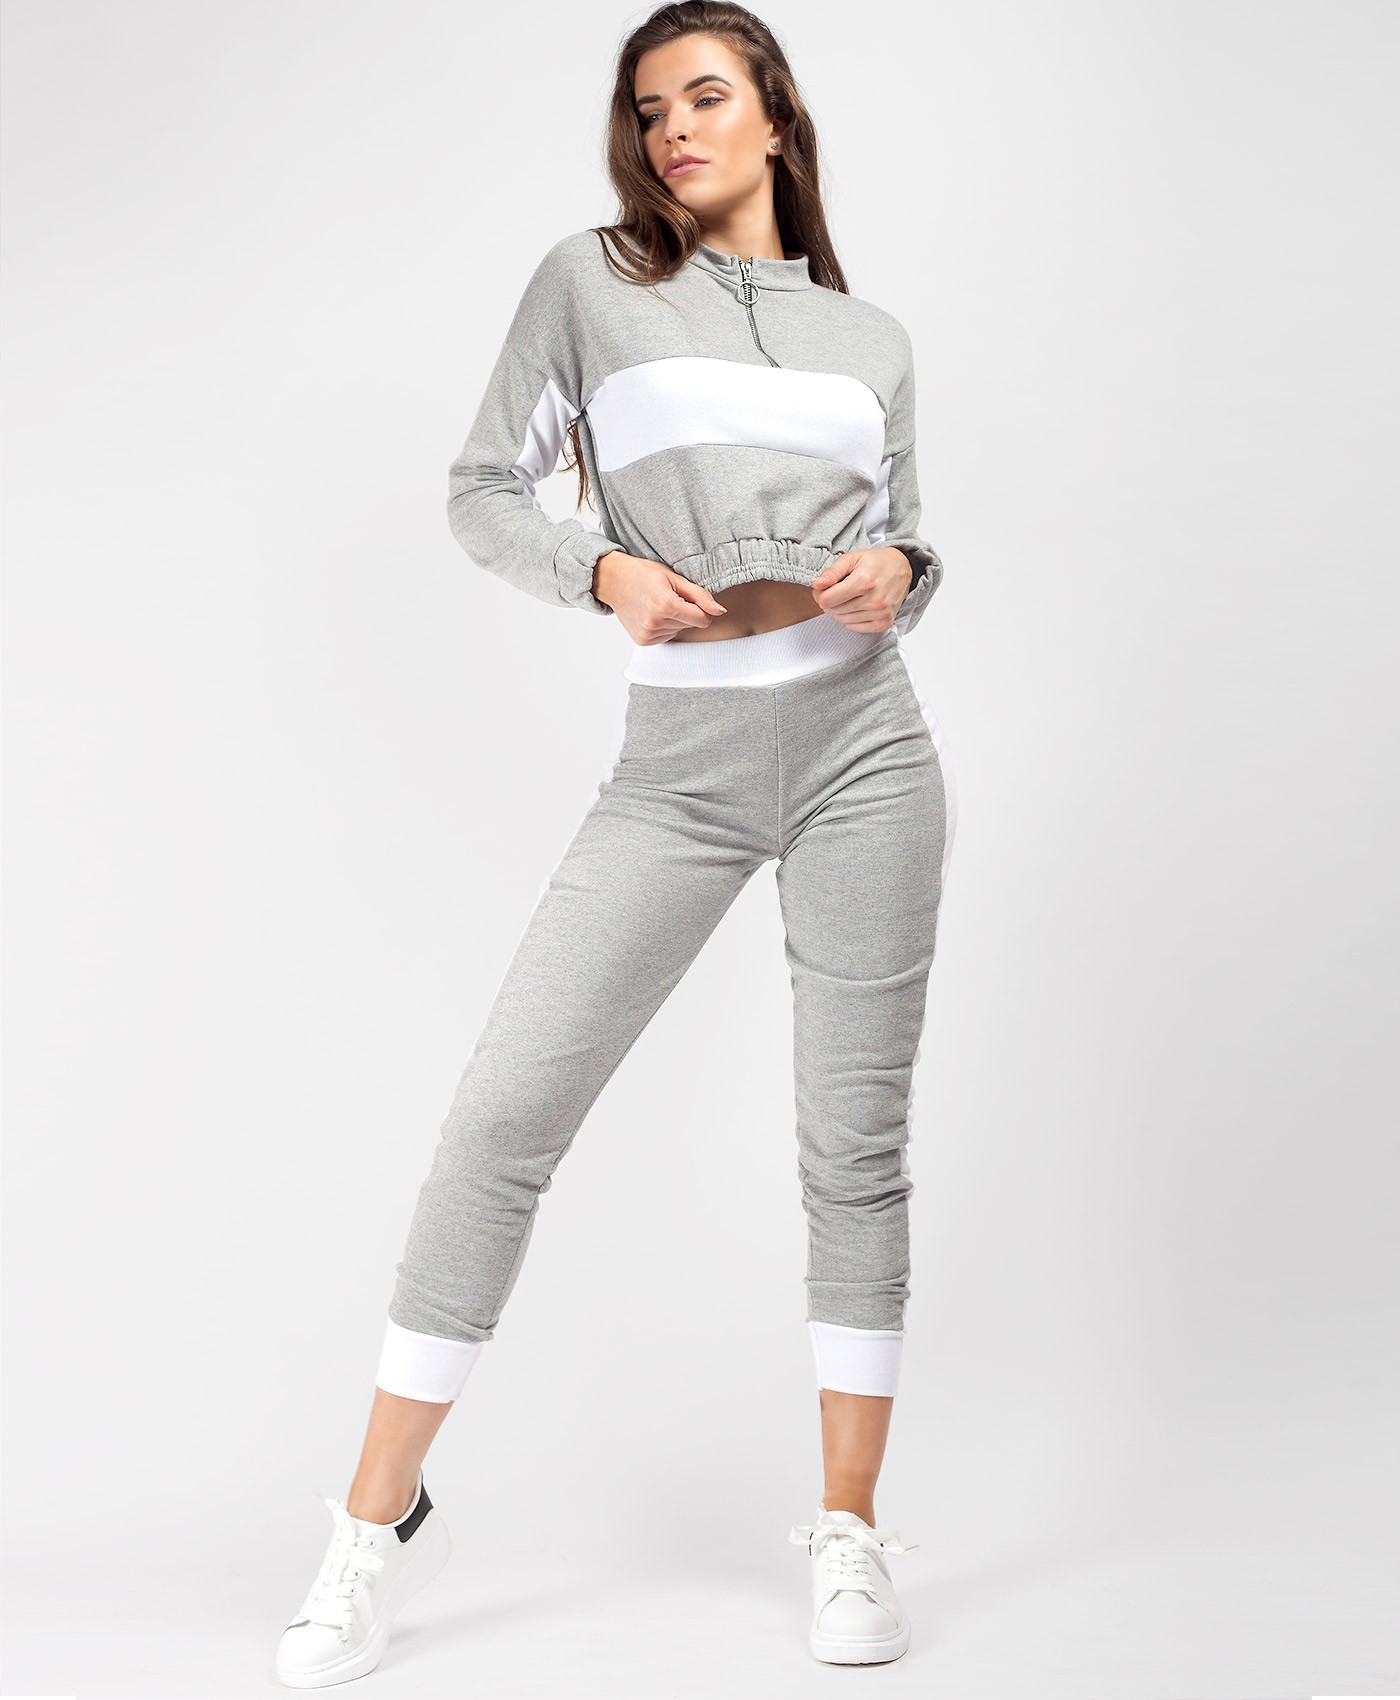 Grey-Colour-Block-Half-Zip-Cropped-Sweatshirt-Skinny-Joggers-Loungewear-Set-1